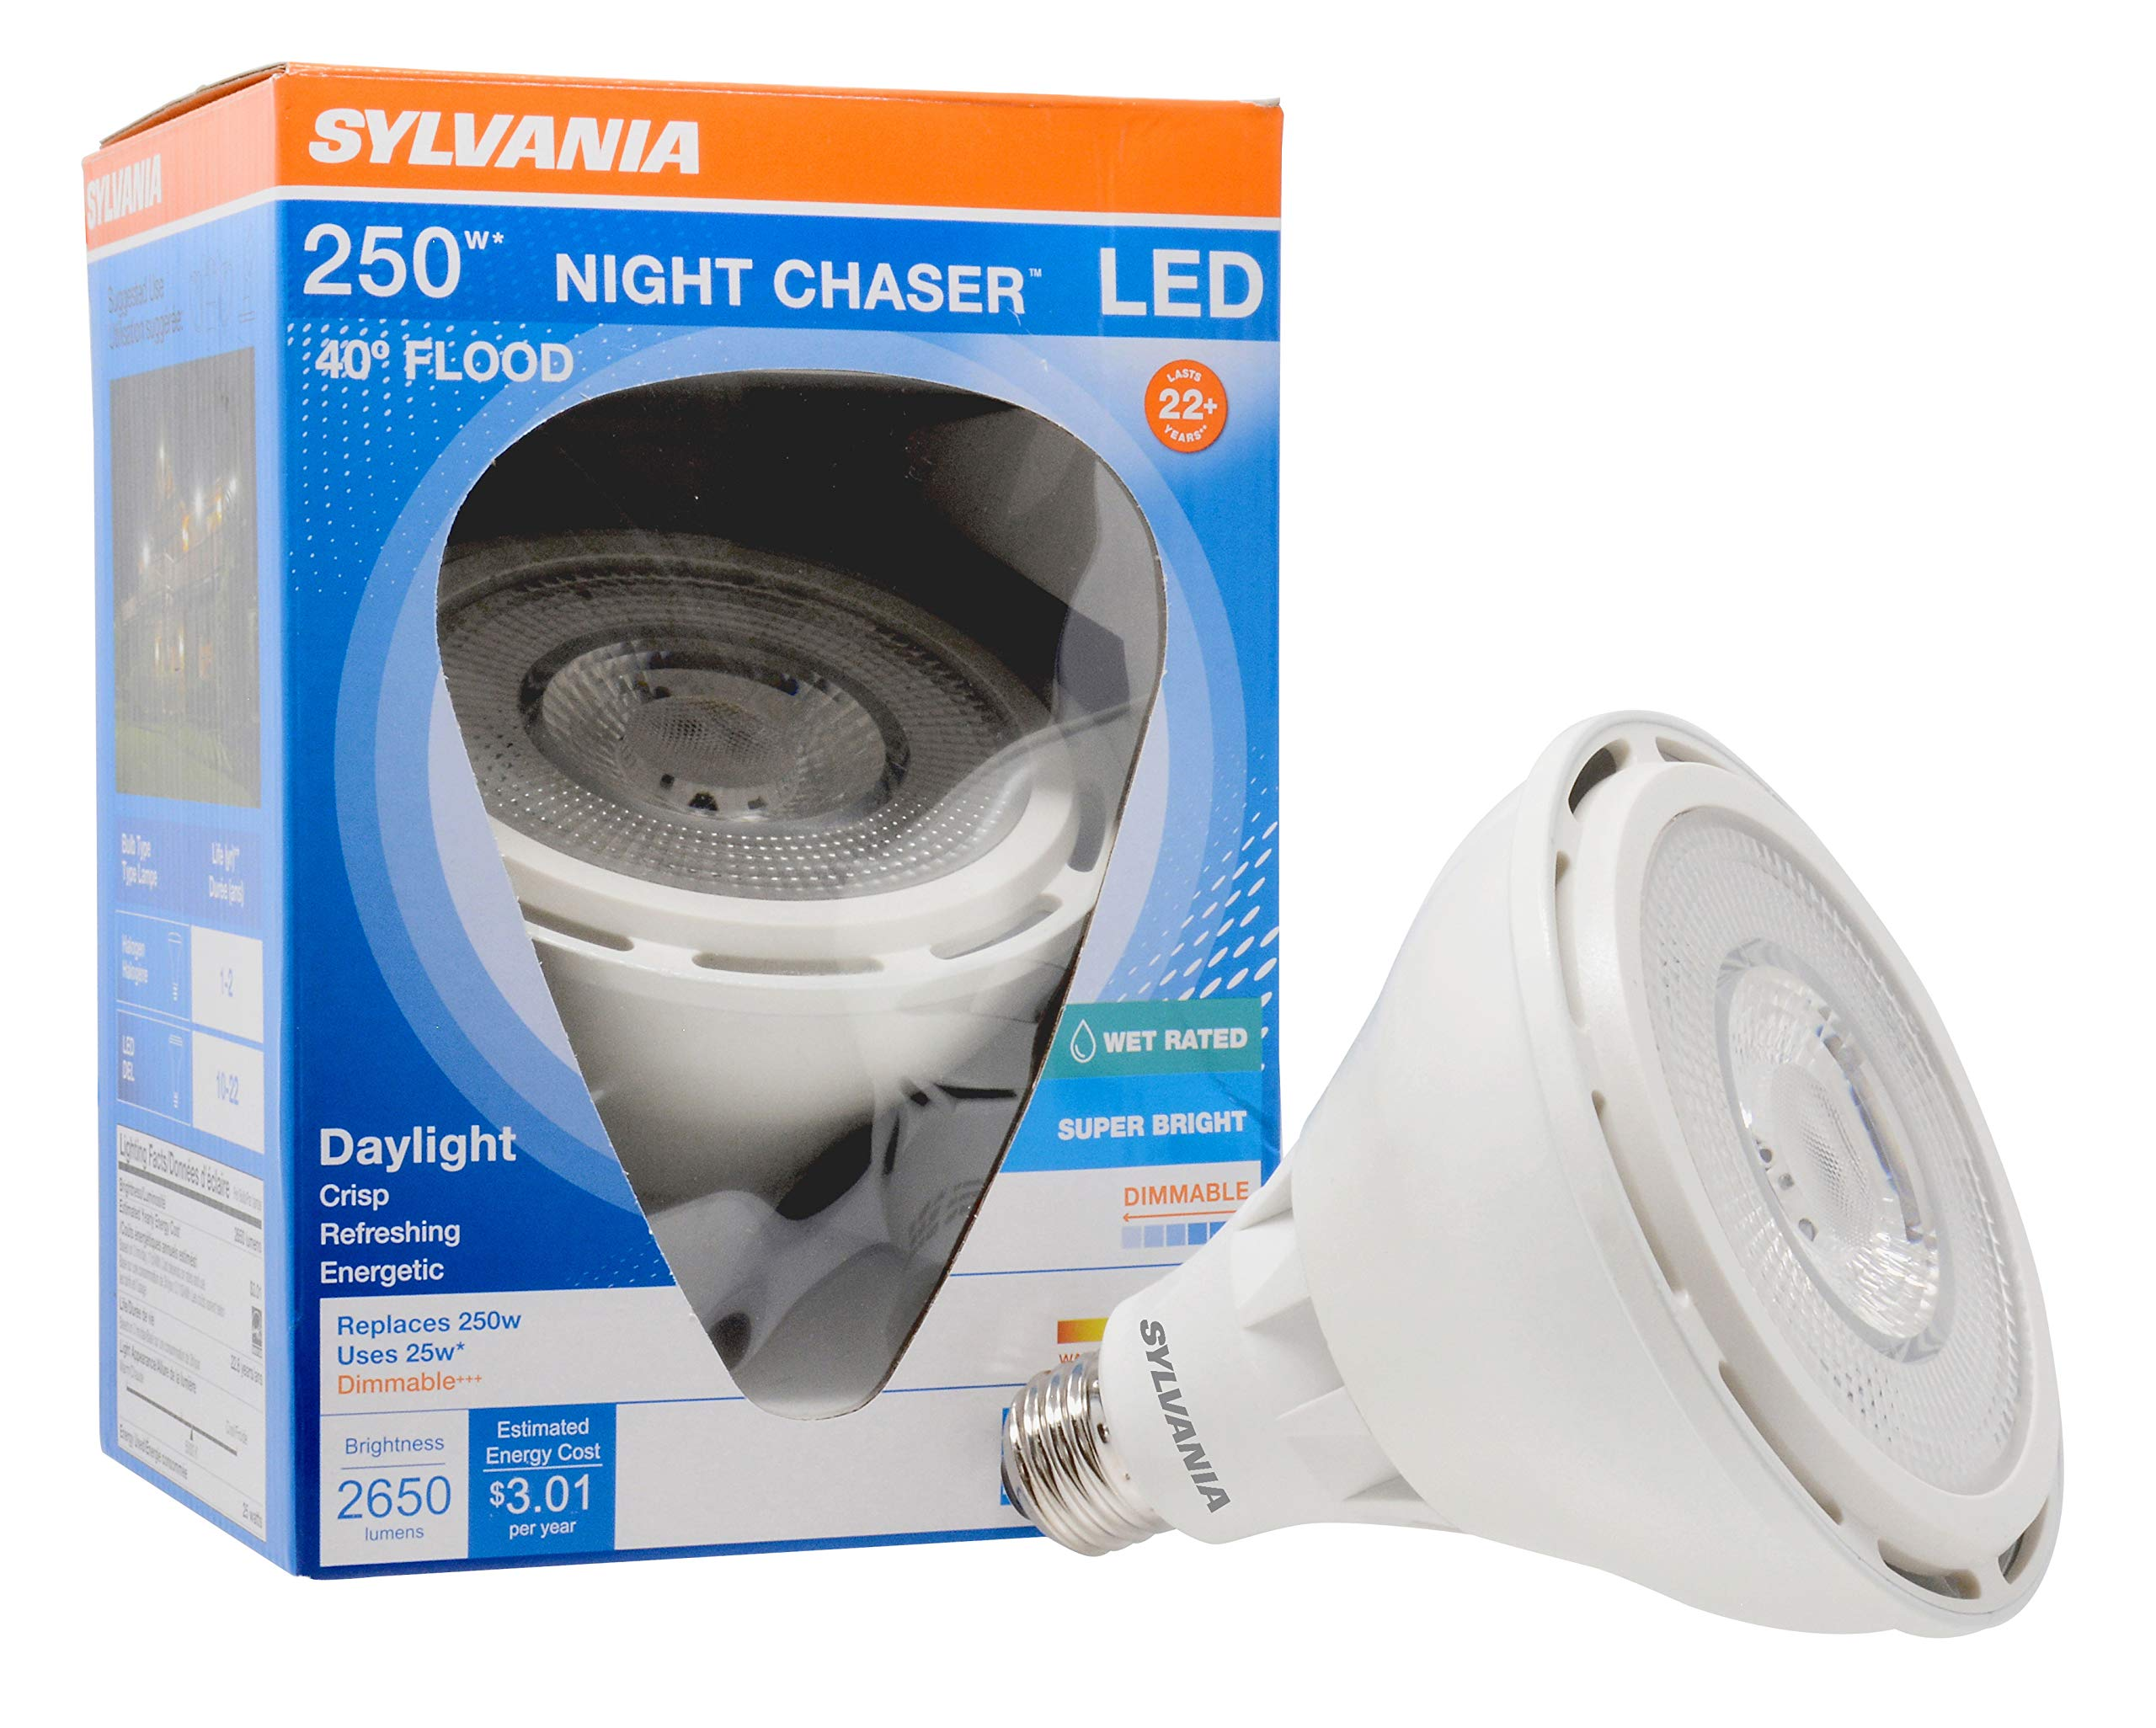 SYLVANIA Ultra LED Night Chaser, PAR38, 250W Equivalent, 2650 Lumen, Replacement for Halogen Flood Spot Light, Medium Base E26, Dimmable, 5000K Daylight